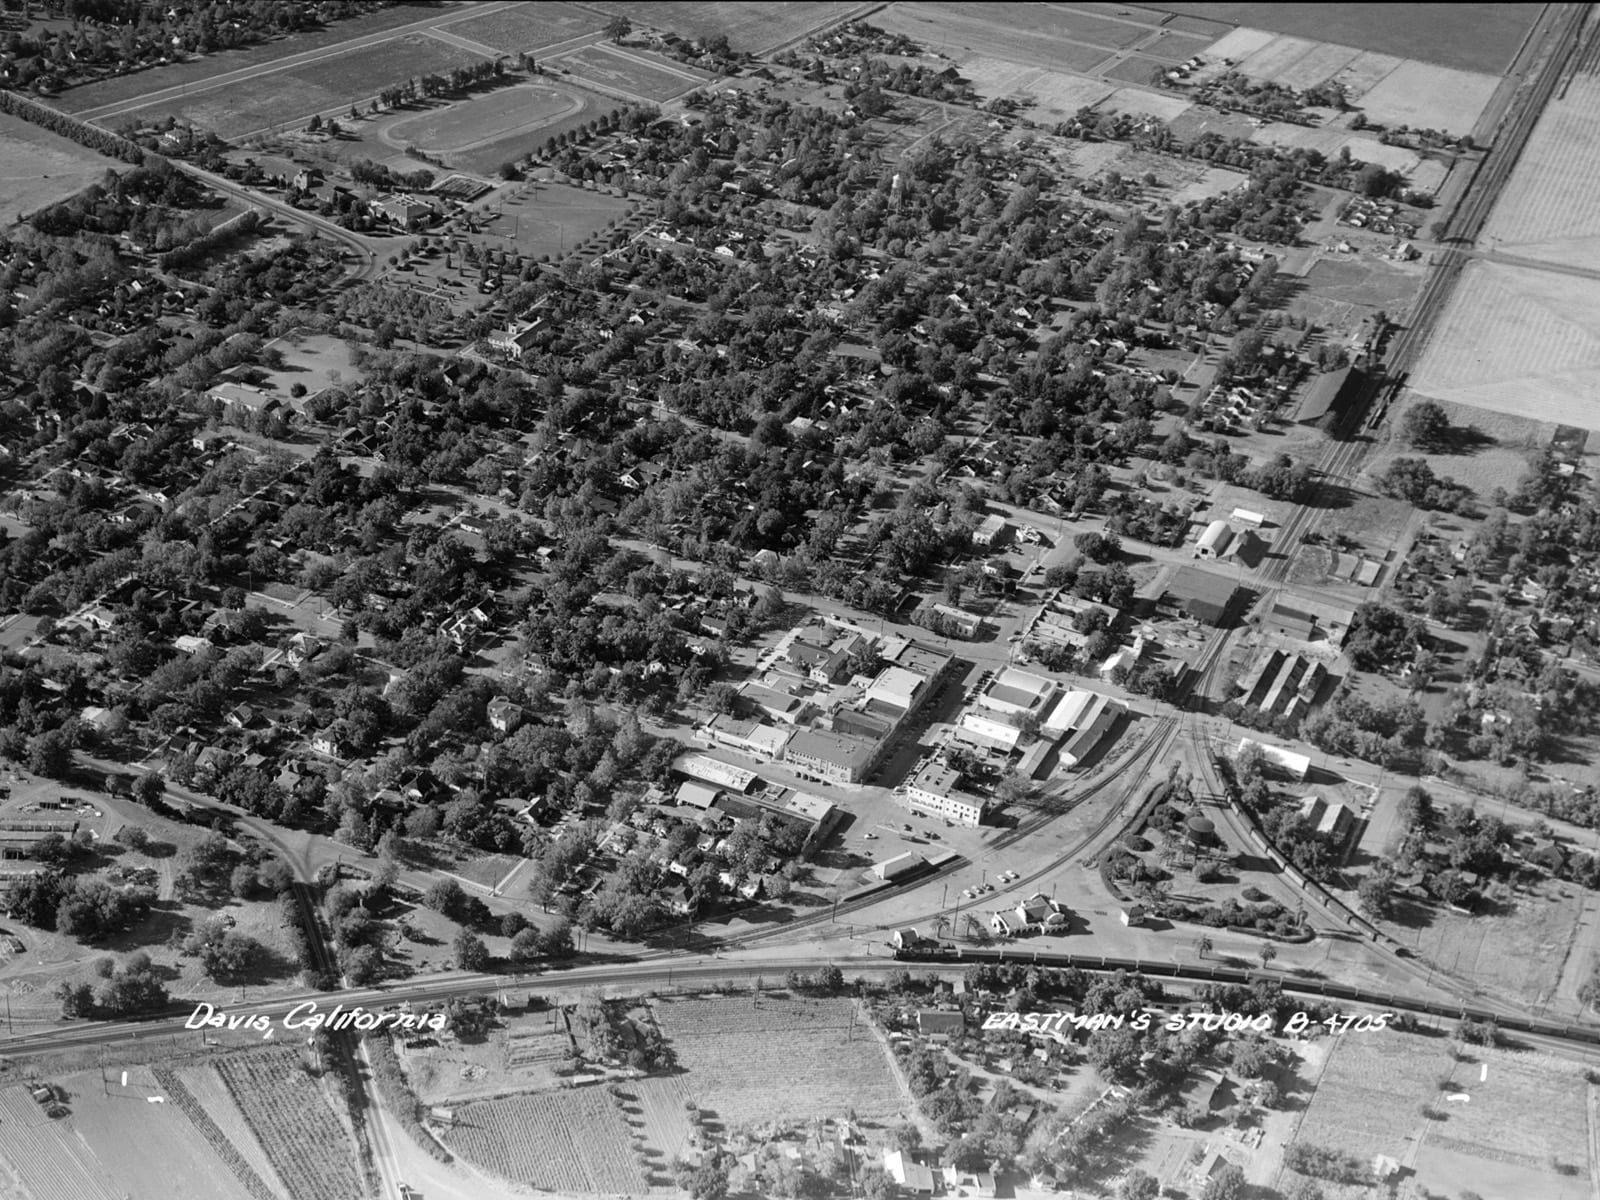 Aerial view of Davis, 1946. Note the railroad depot in the bottom right